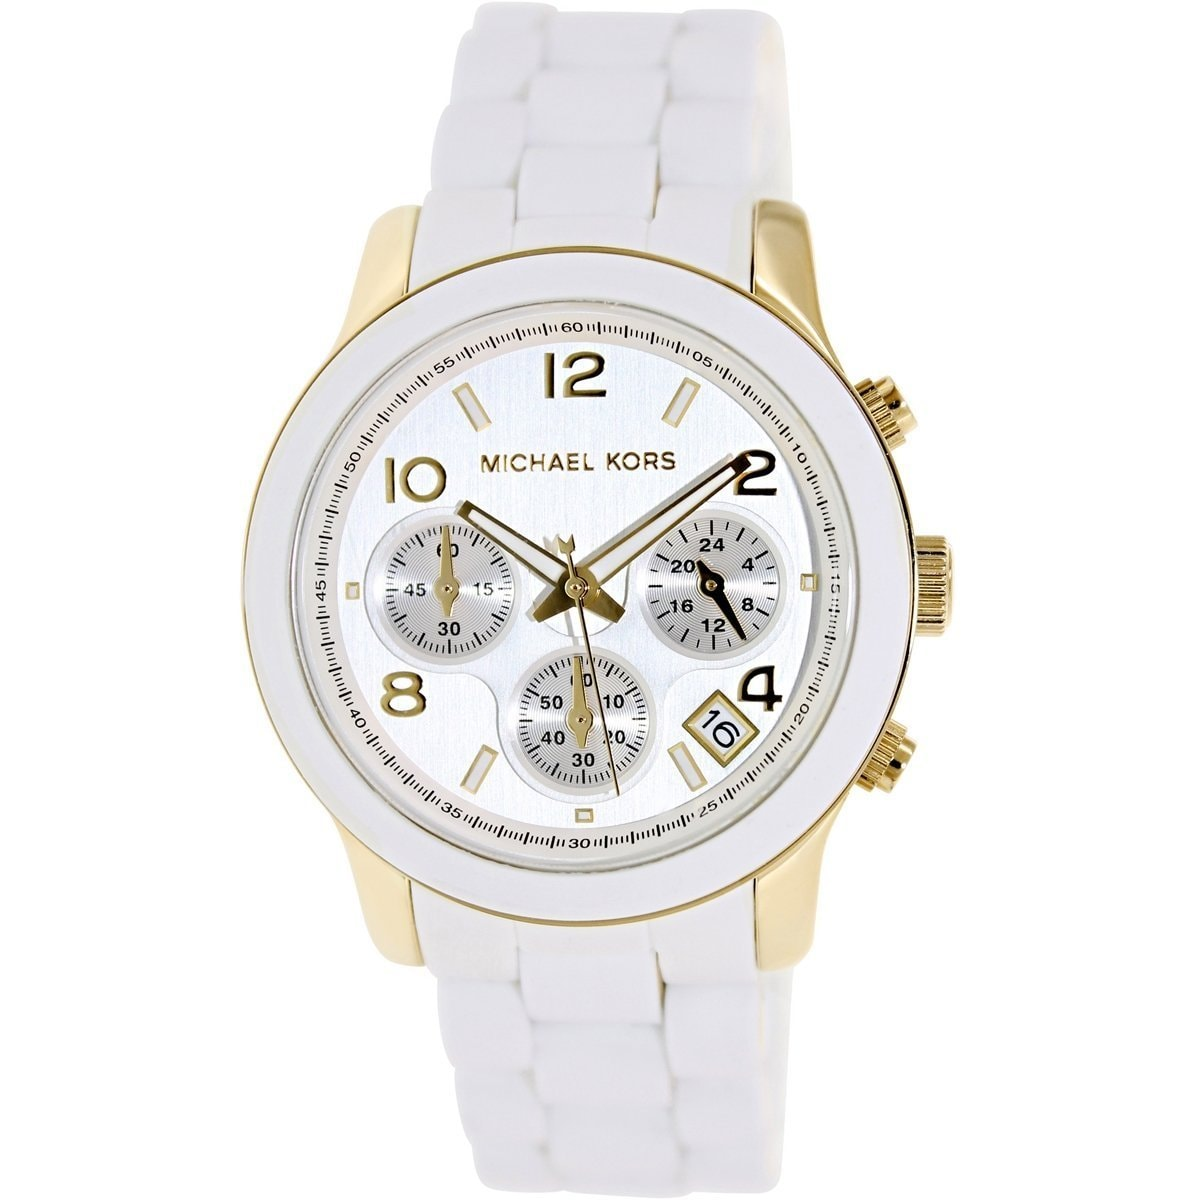 eaa646a99bdf Shop Michael Kors Women s MK5145 Runway Chronograph White and Yellow  Goldtone Watch - Free Shipping Today - Overstock - 5084193